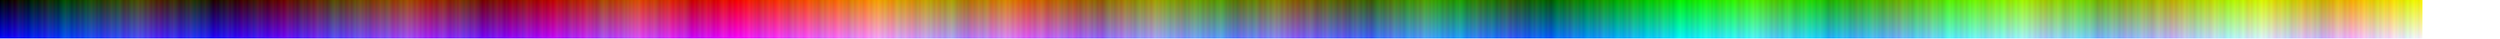 My first approach to create a two-dimensional complete color picker